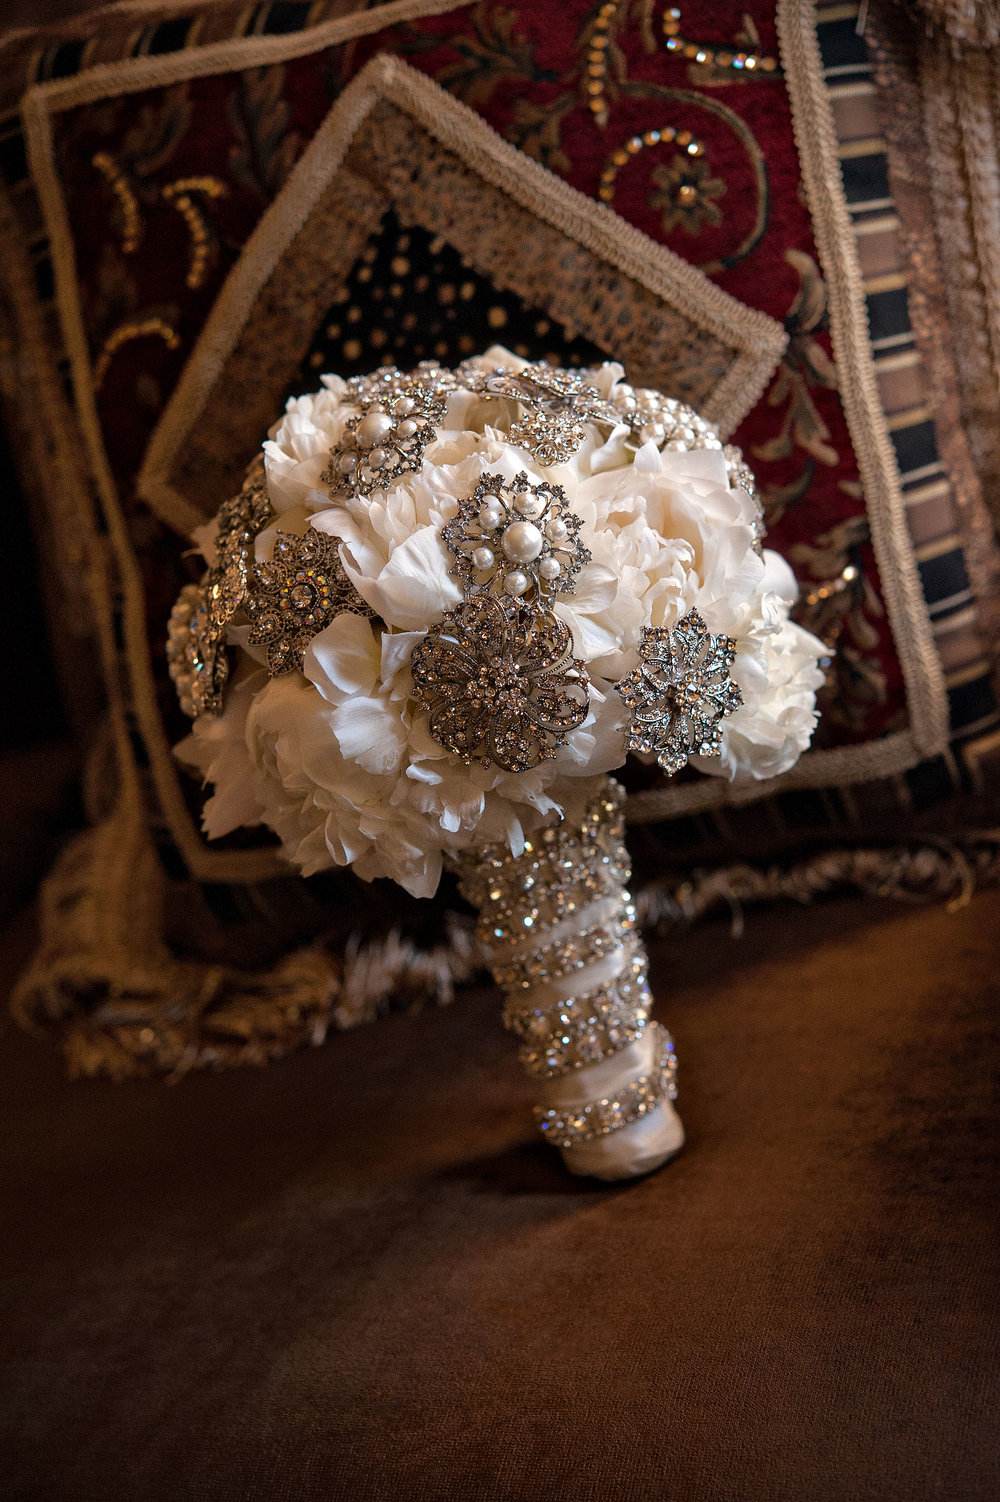 Bride's bejeweled bouquet.